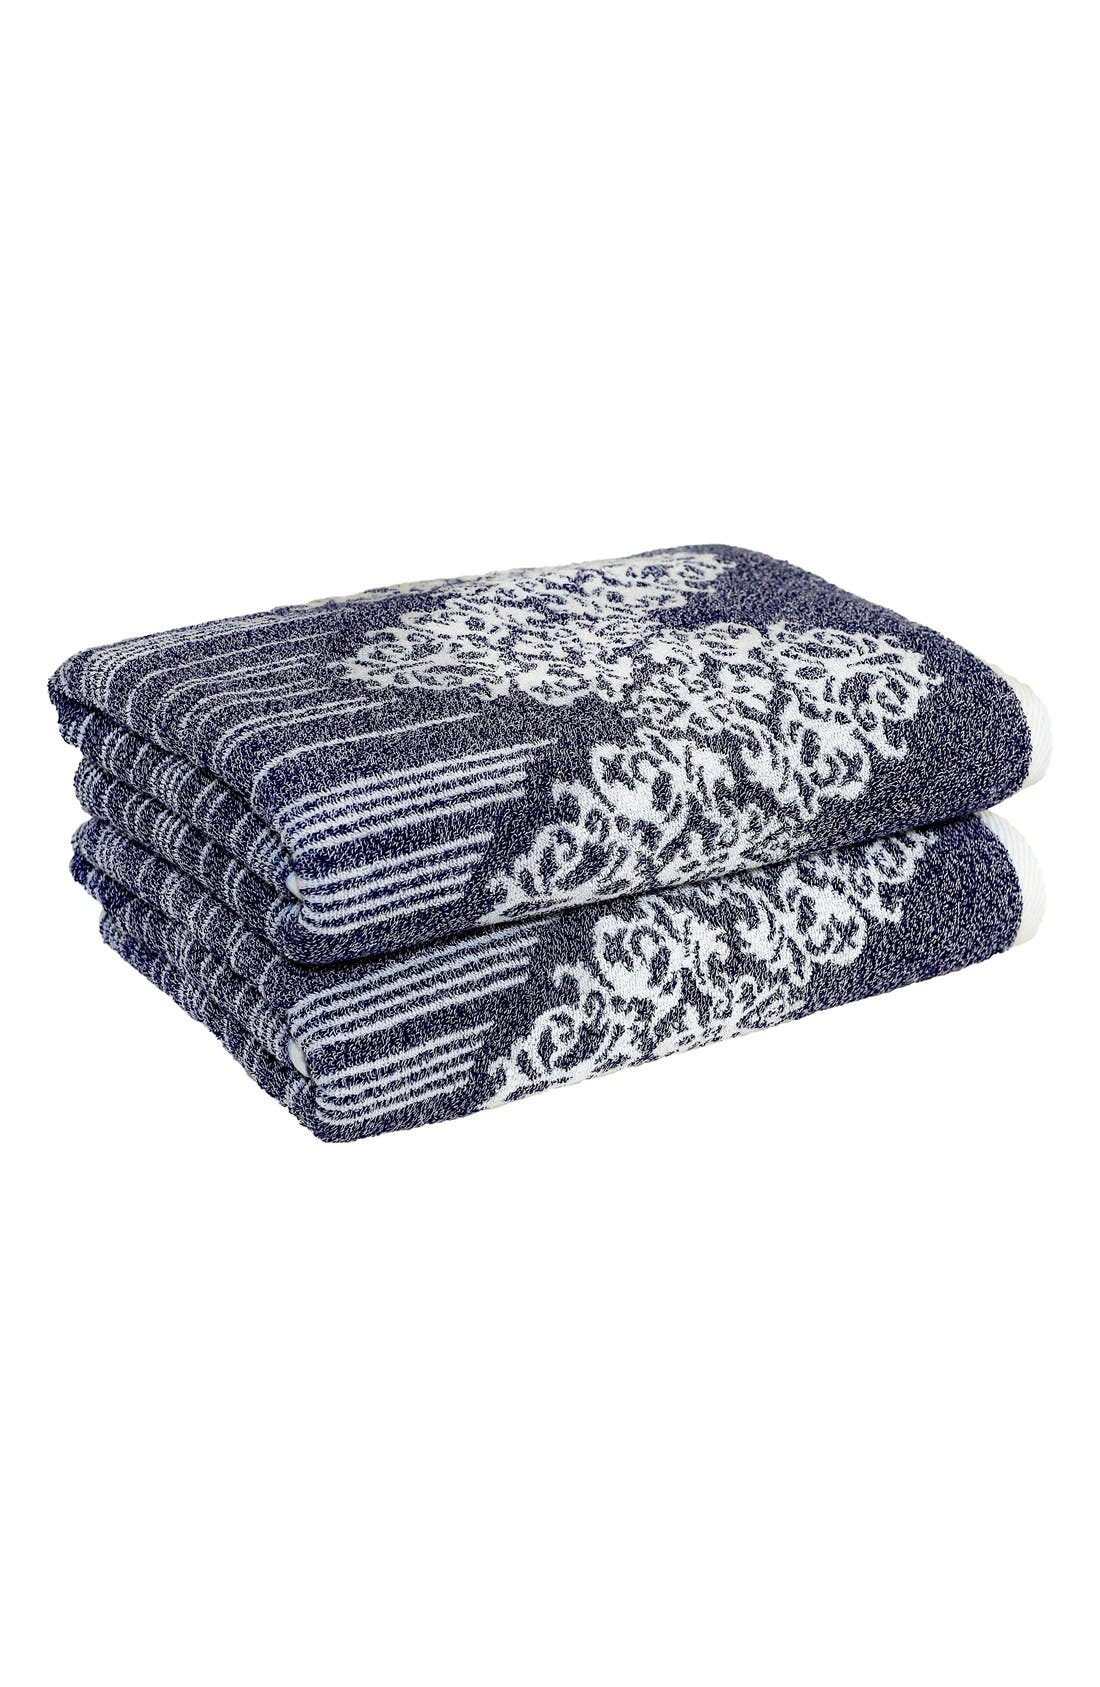 Linum 'Gioia' Turkish Cotton Bath Towels,                         Main,                         color, OCEAN BLUE